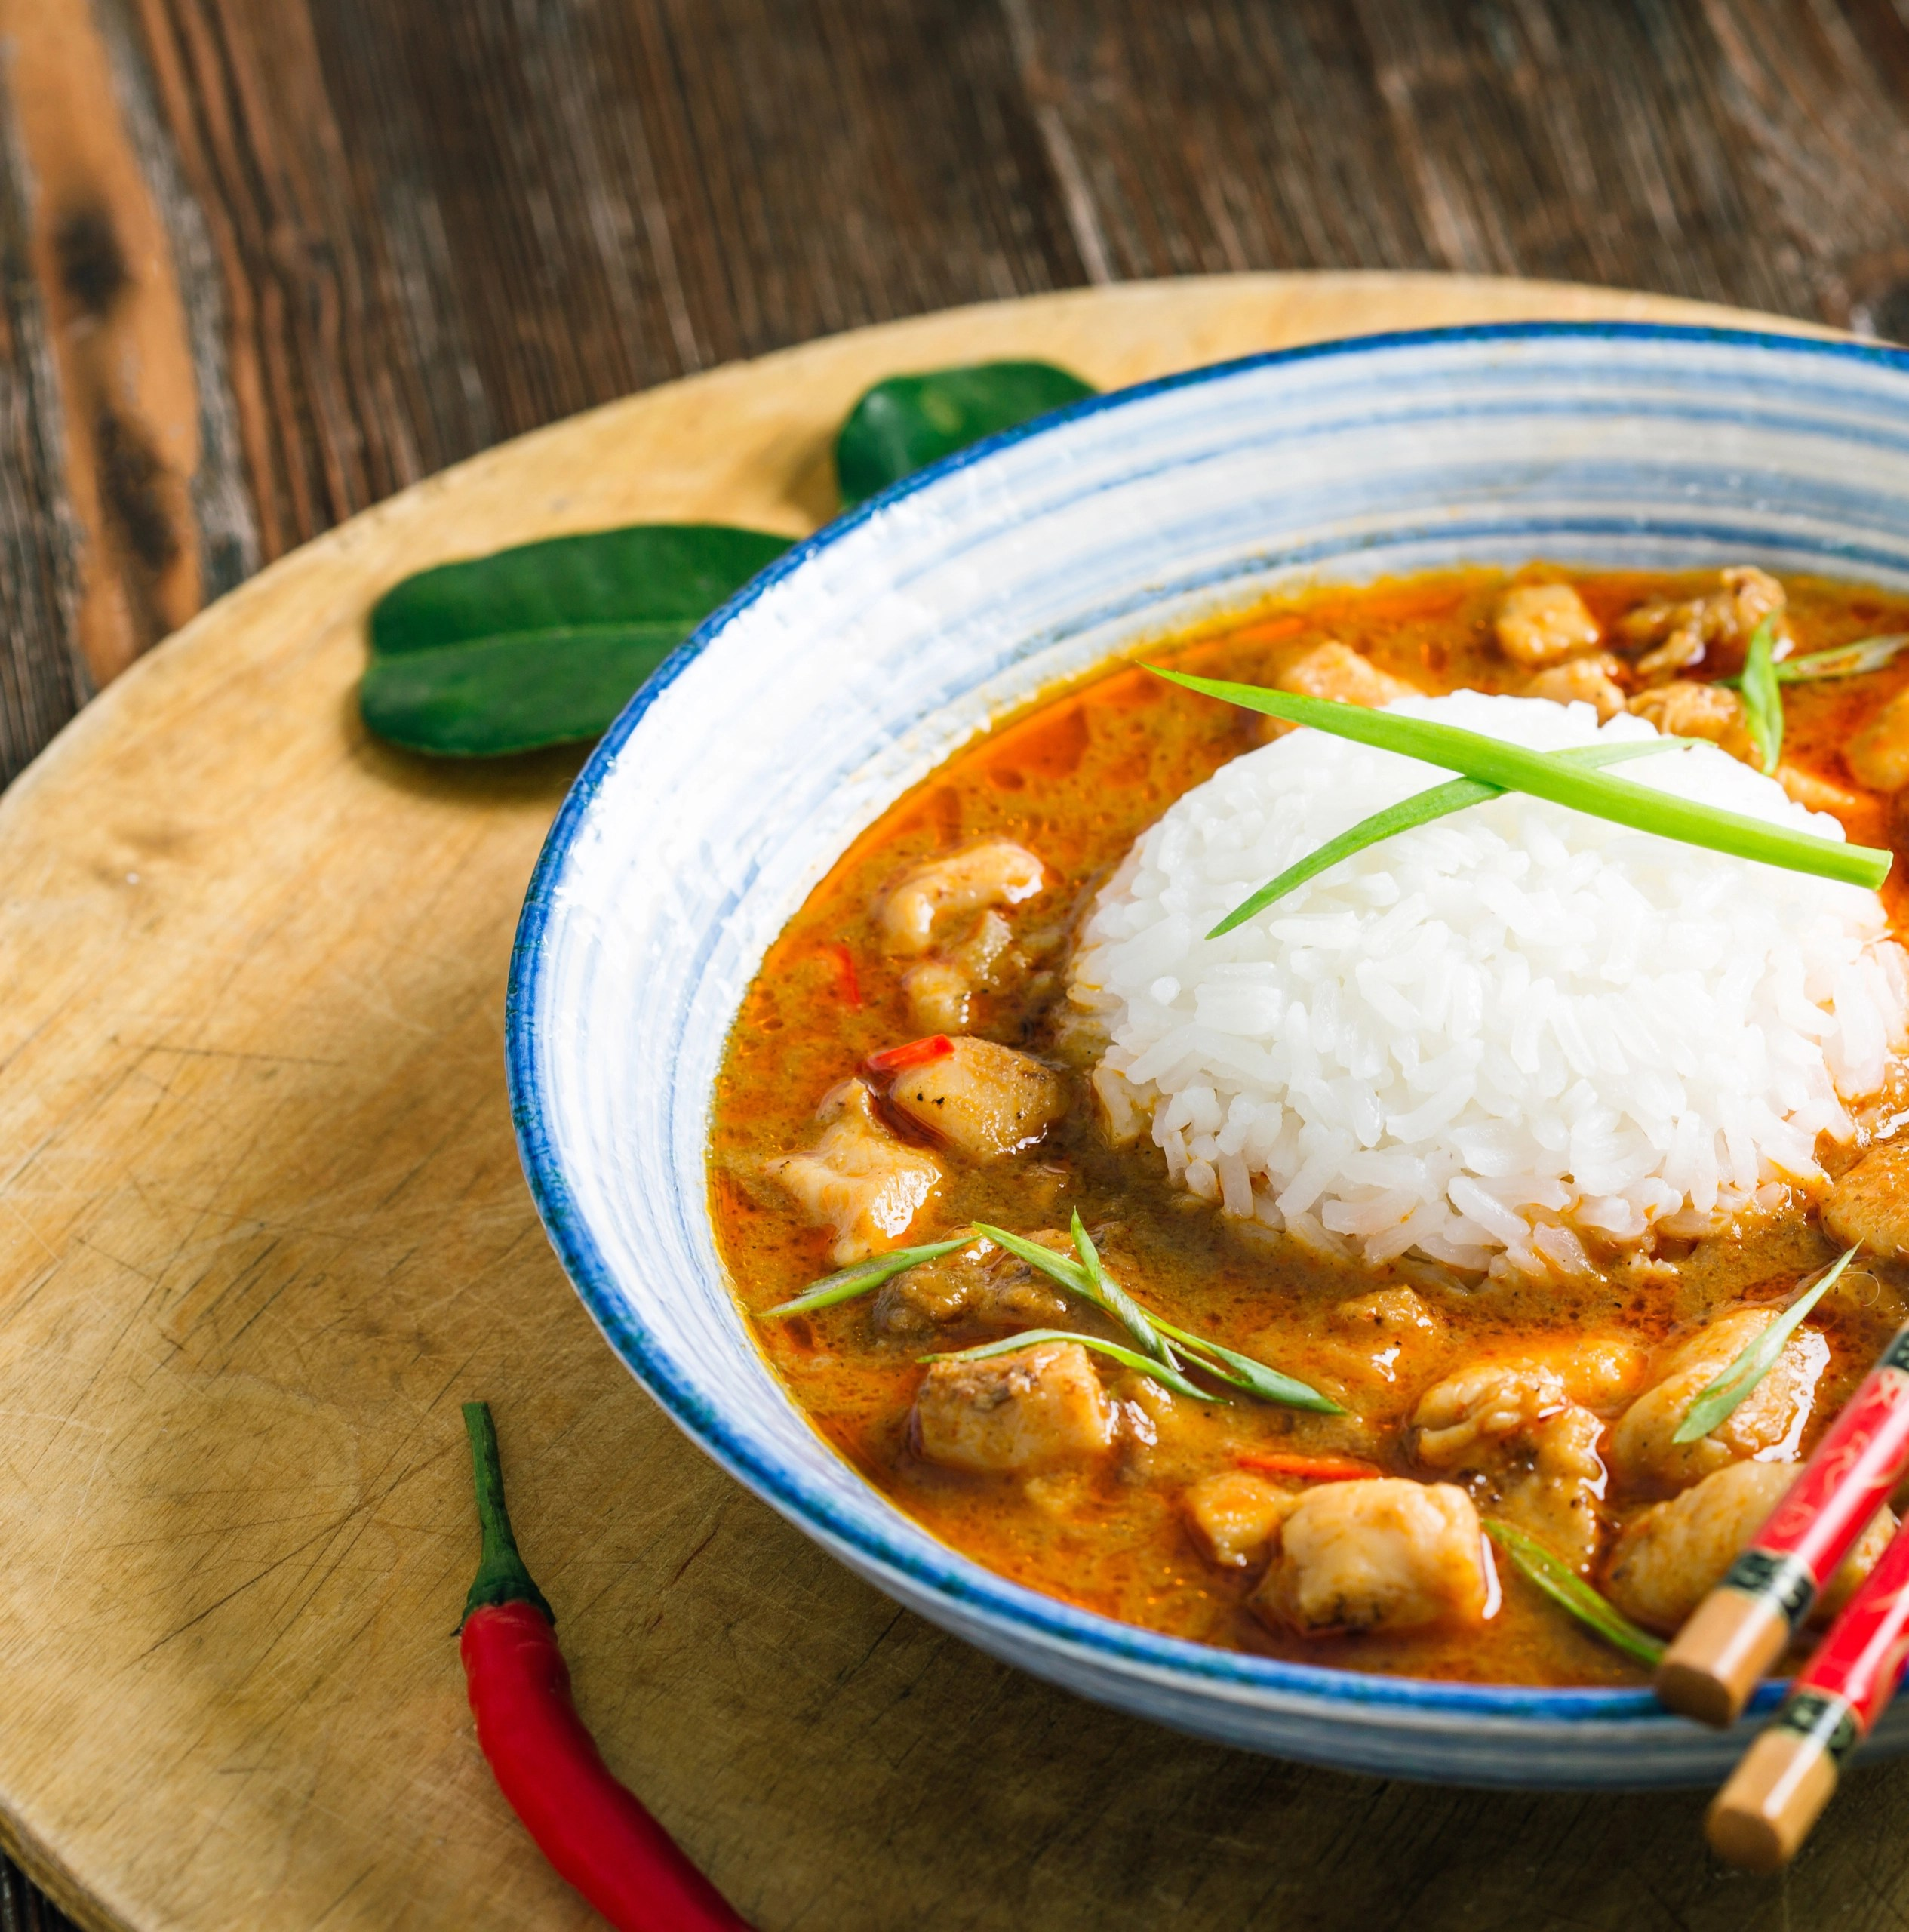 massaman curry in bowl with chopstic